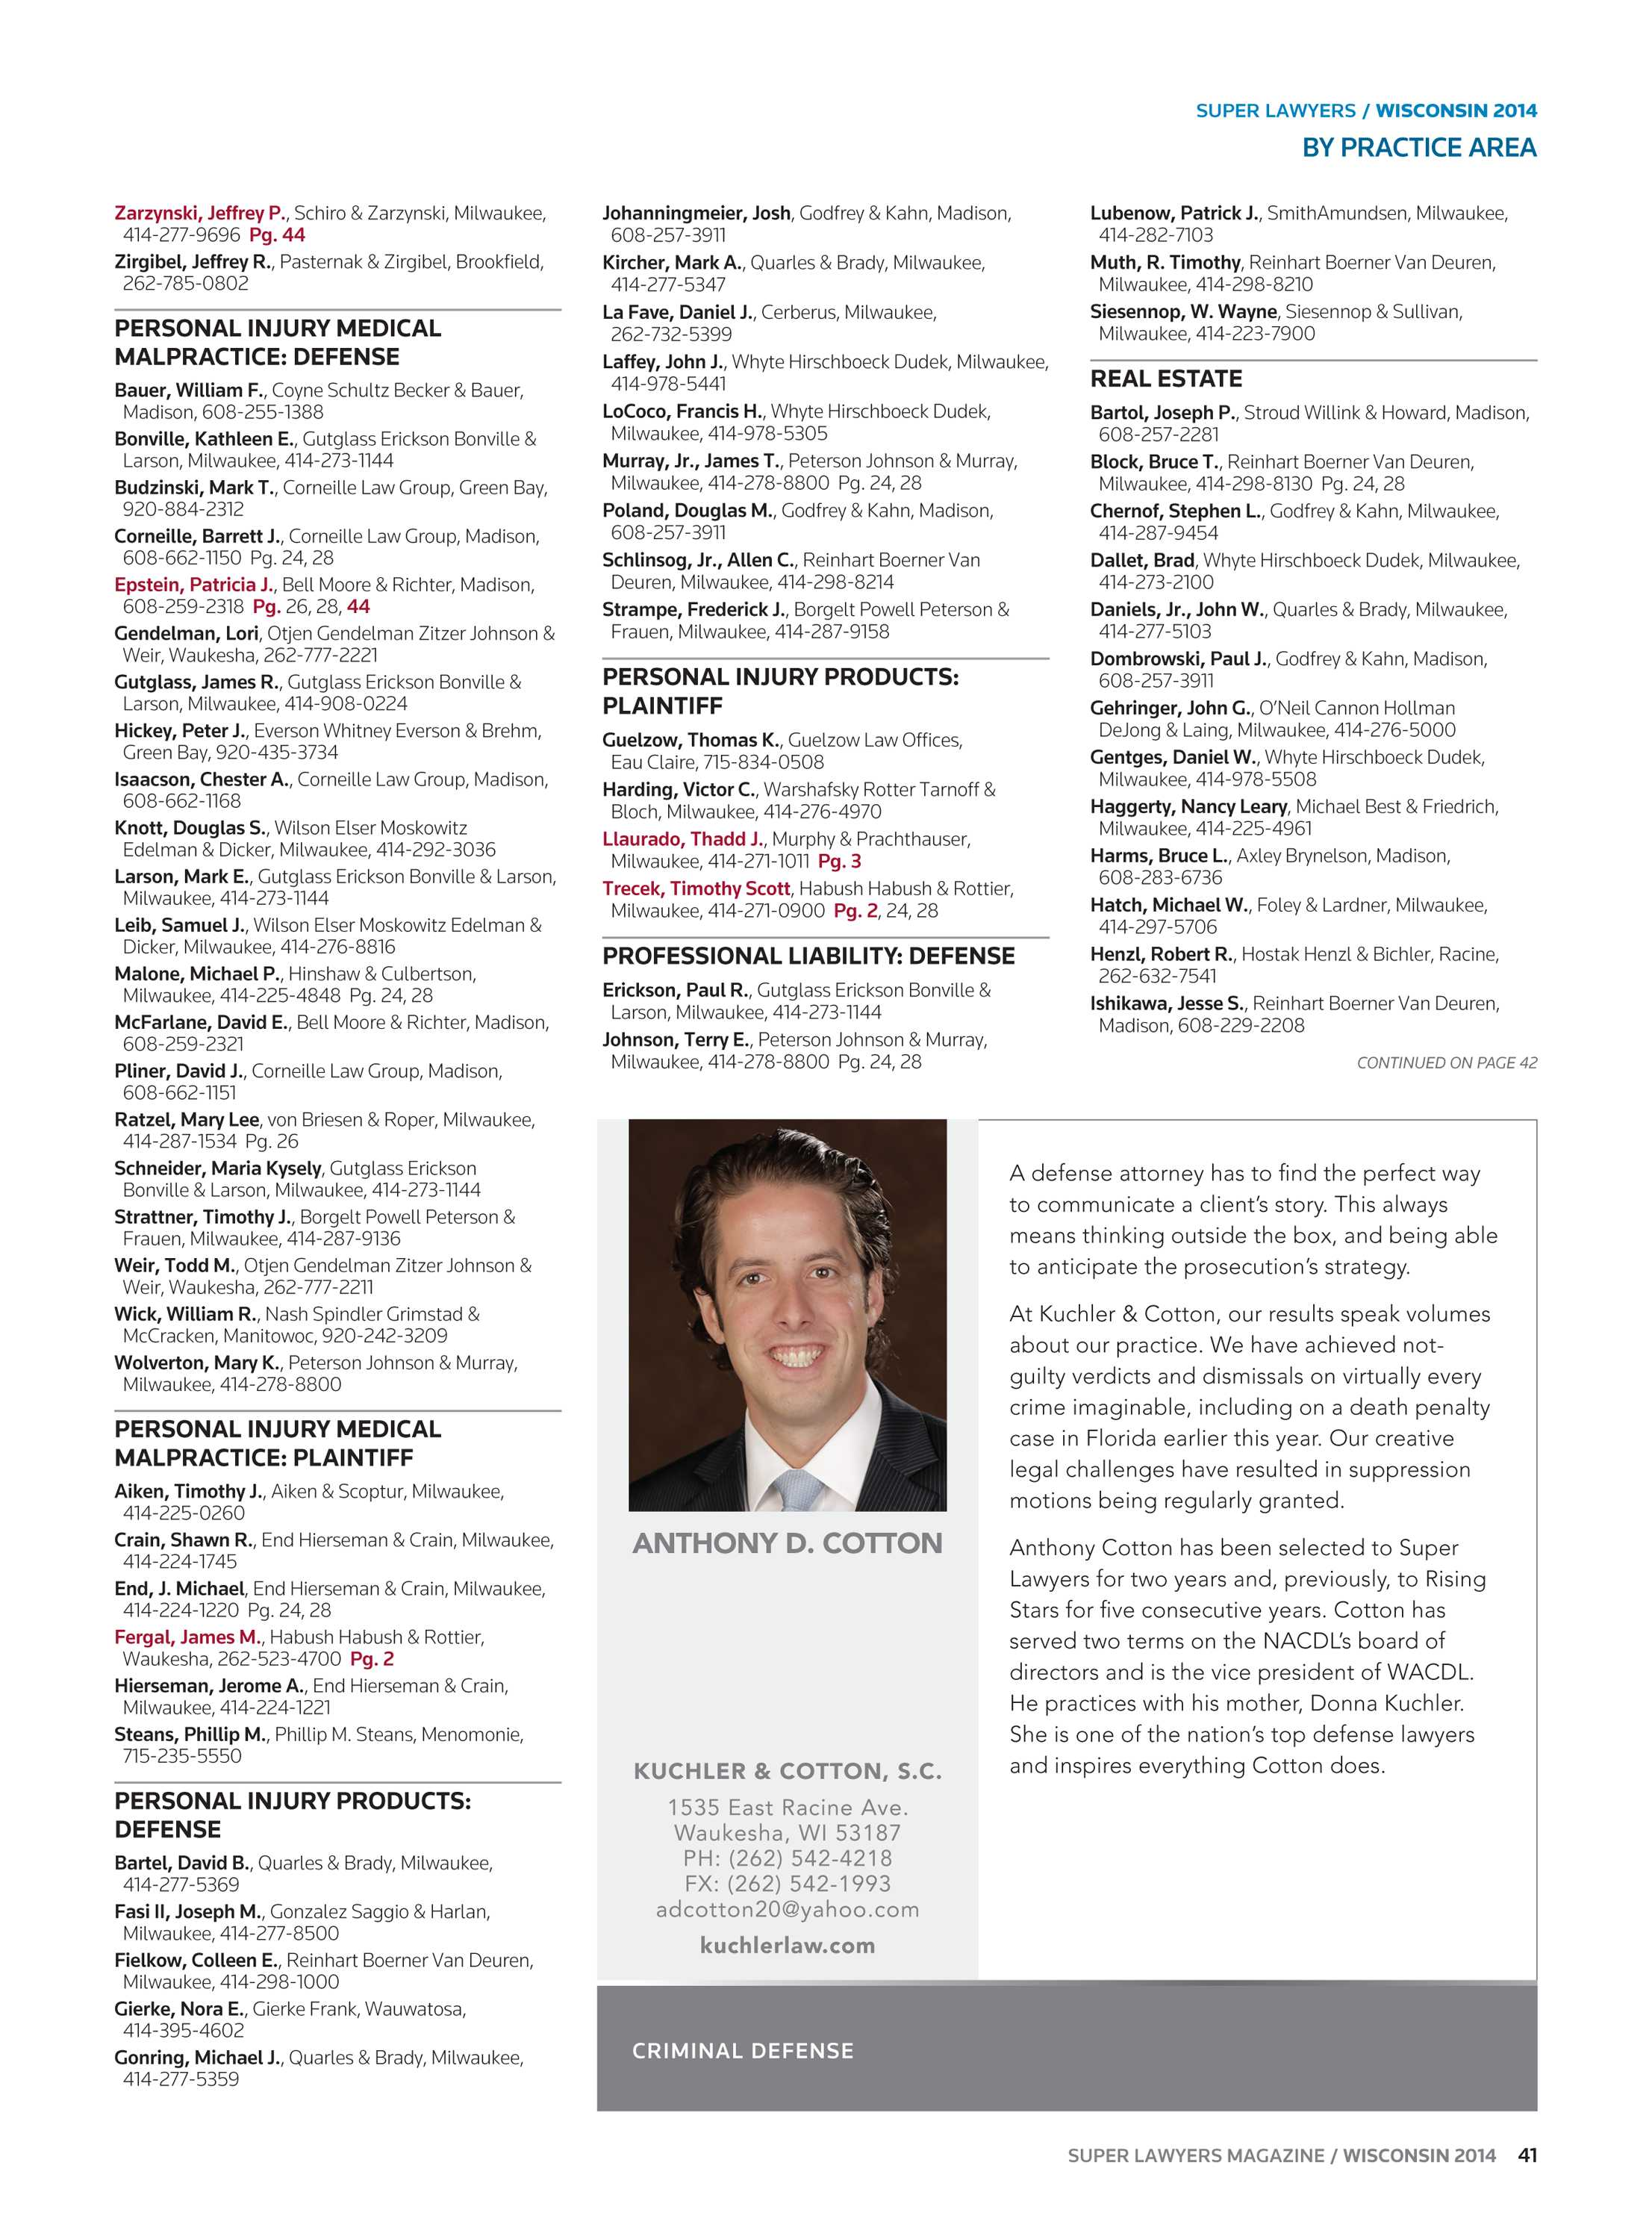 Super Lawyers - Wisconsin 2014 - page 41